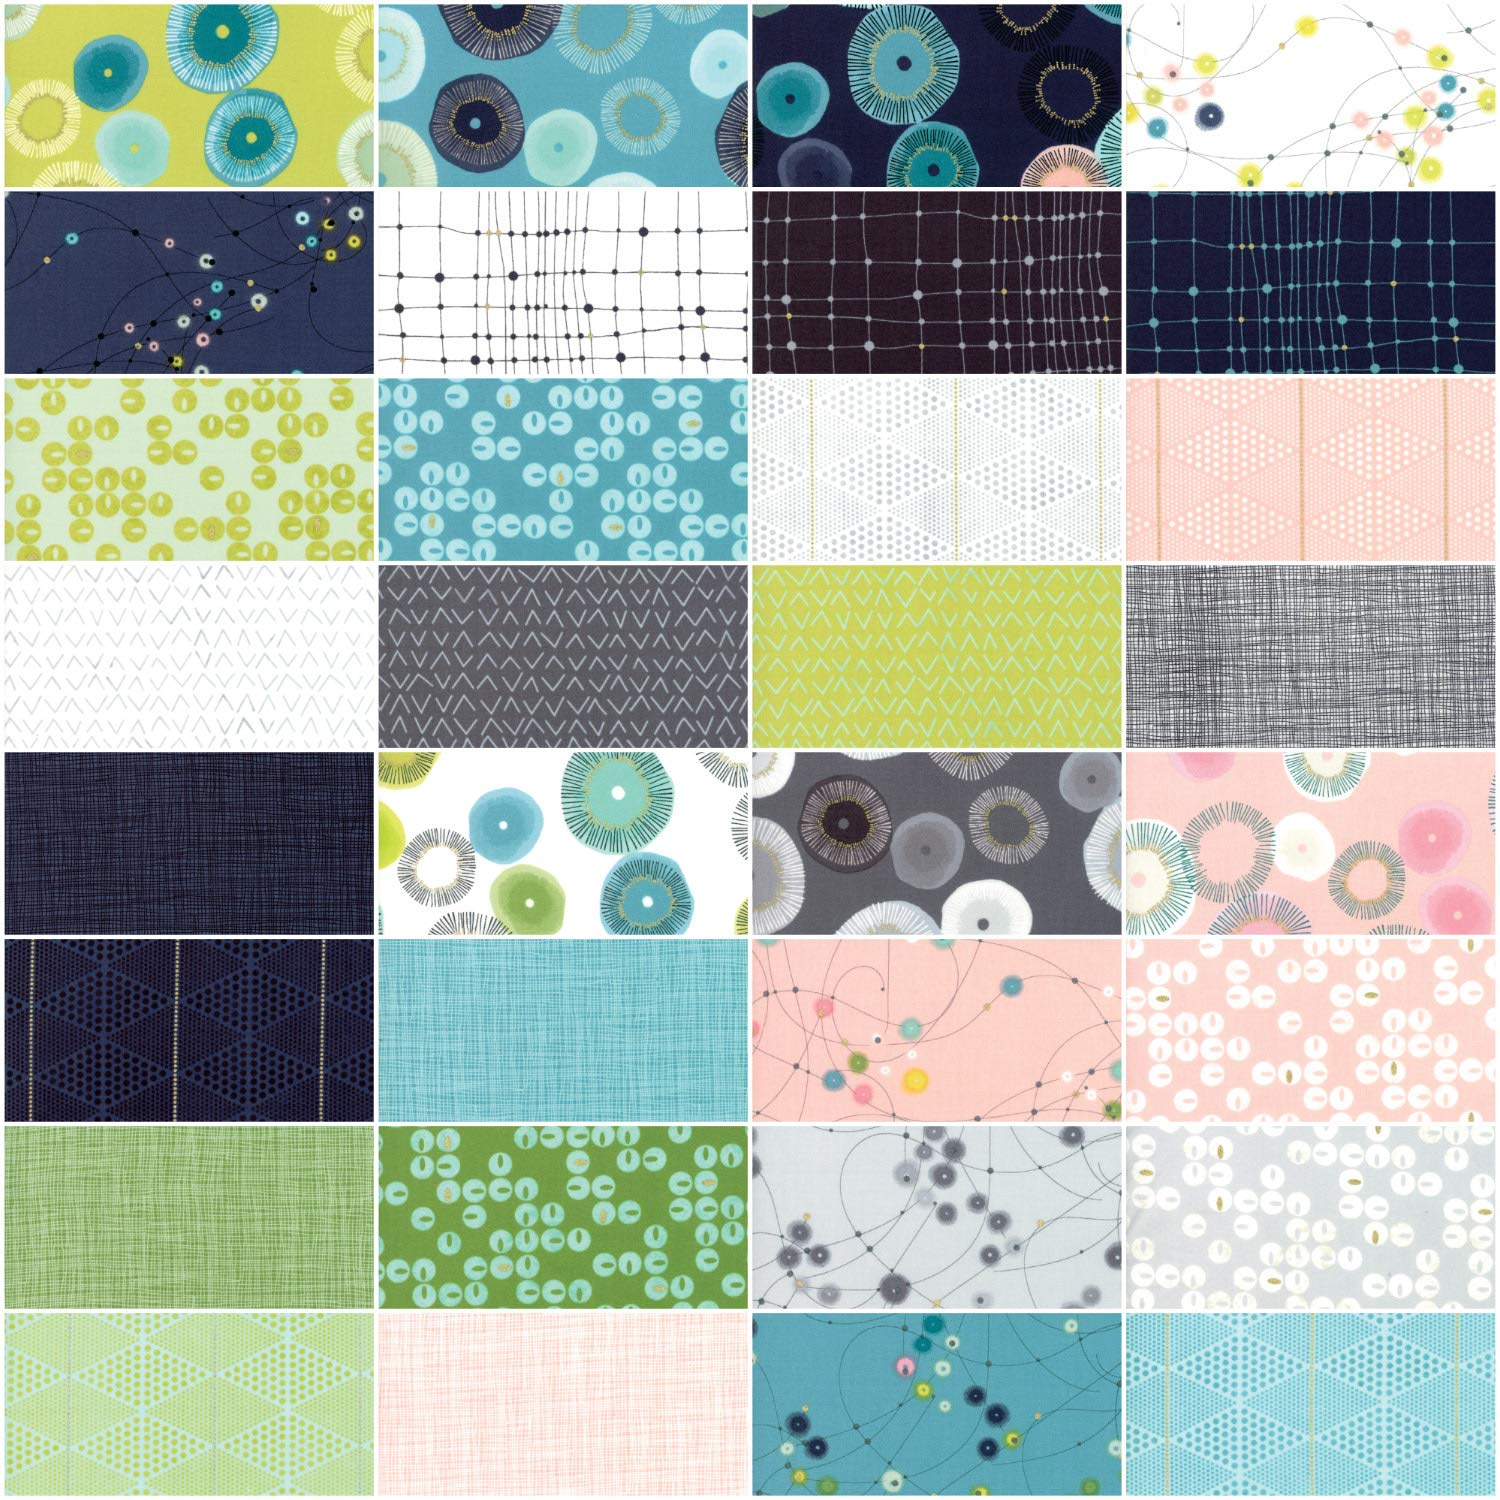 Day in Paris Layer Cake, 42-10'' Precut Fabric Quilt Squares by Brigitte Heitland for Zen Chic by MODA (Image #2)